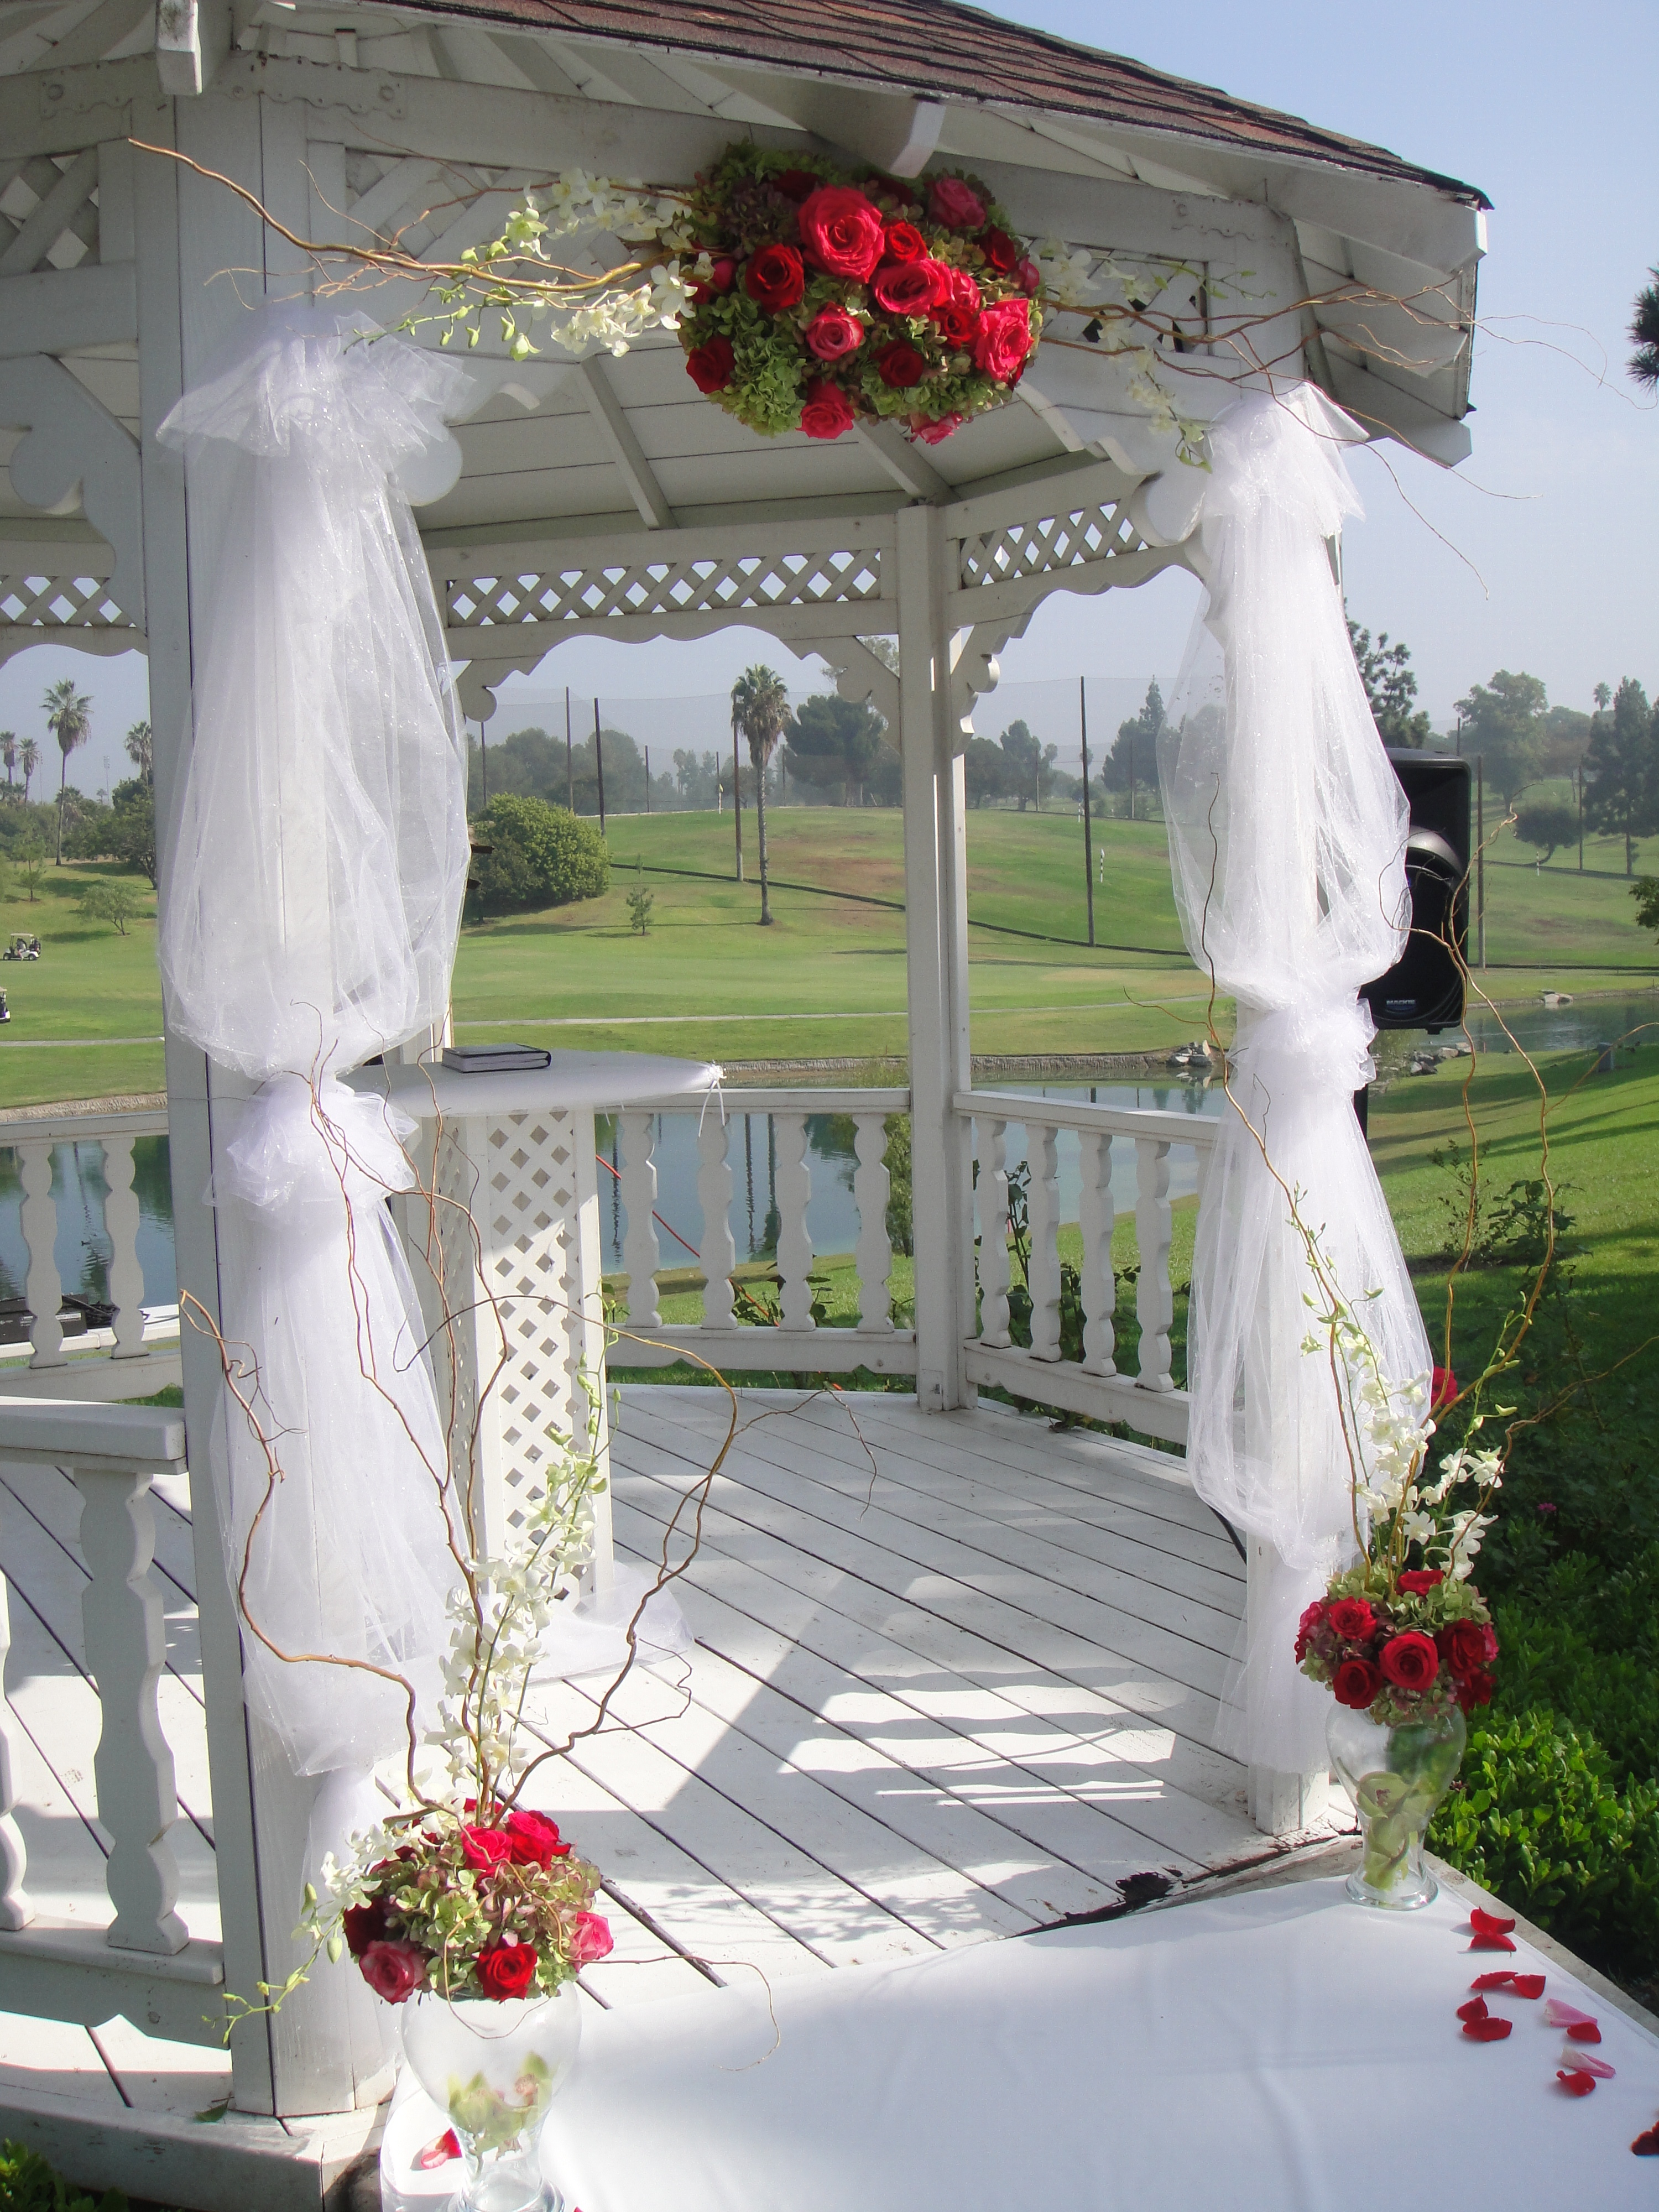 Ceremony, Flowers & Decor, white, pink, red, green, Ceremony Flowers, Outdoor, Flowers, Gazebo, Pillars, Dees petals, Swaging